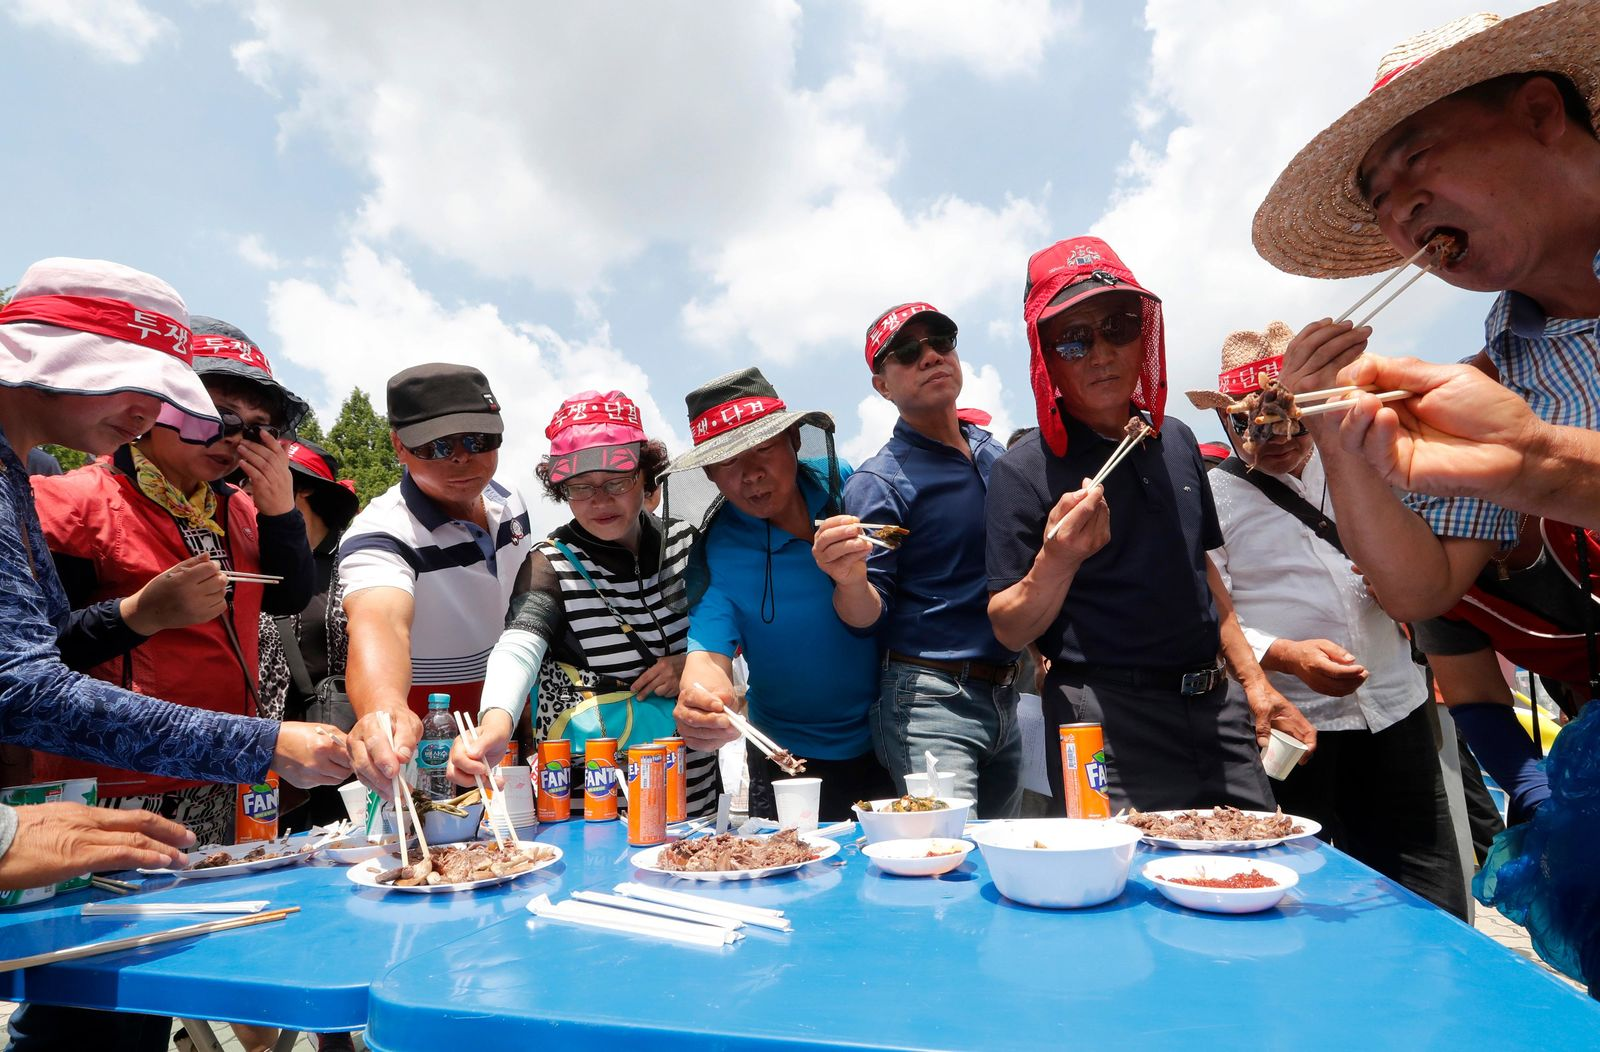 Members of the Korean Dog Meat Association eat dog meat during a rally to support eating the meat in front of the National Assembly in Seoul, South Korea, Friday, July 12, 2019. July 12 is the day South Koreans eat healthy foods such as dog meat in the belief it would help them survive heat during summer. (AP Photo/Ahn Young-joon)